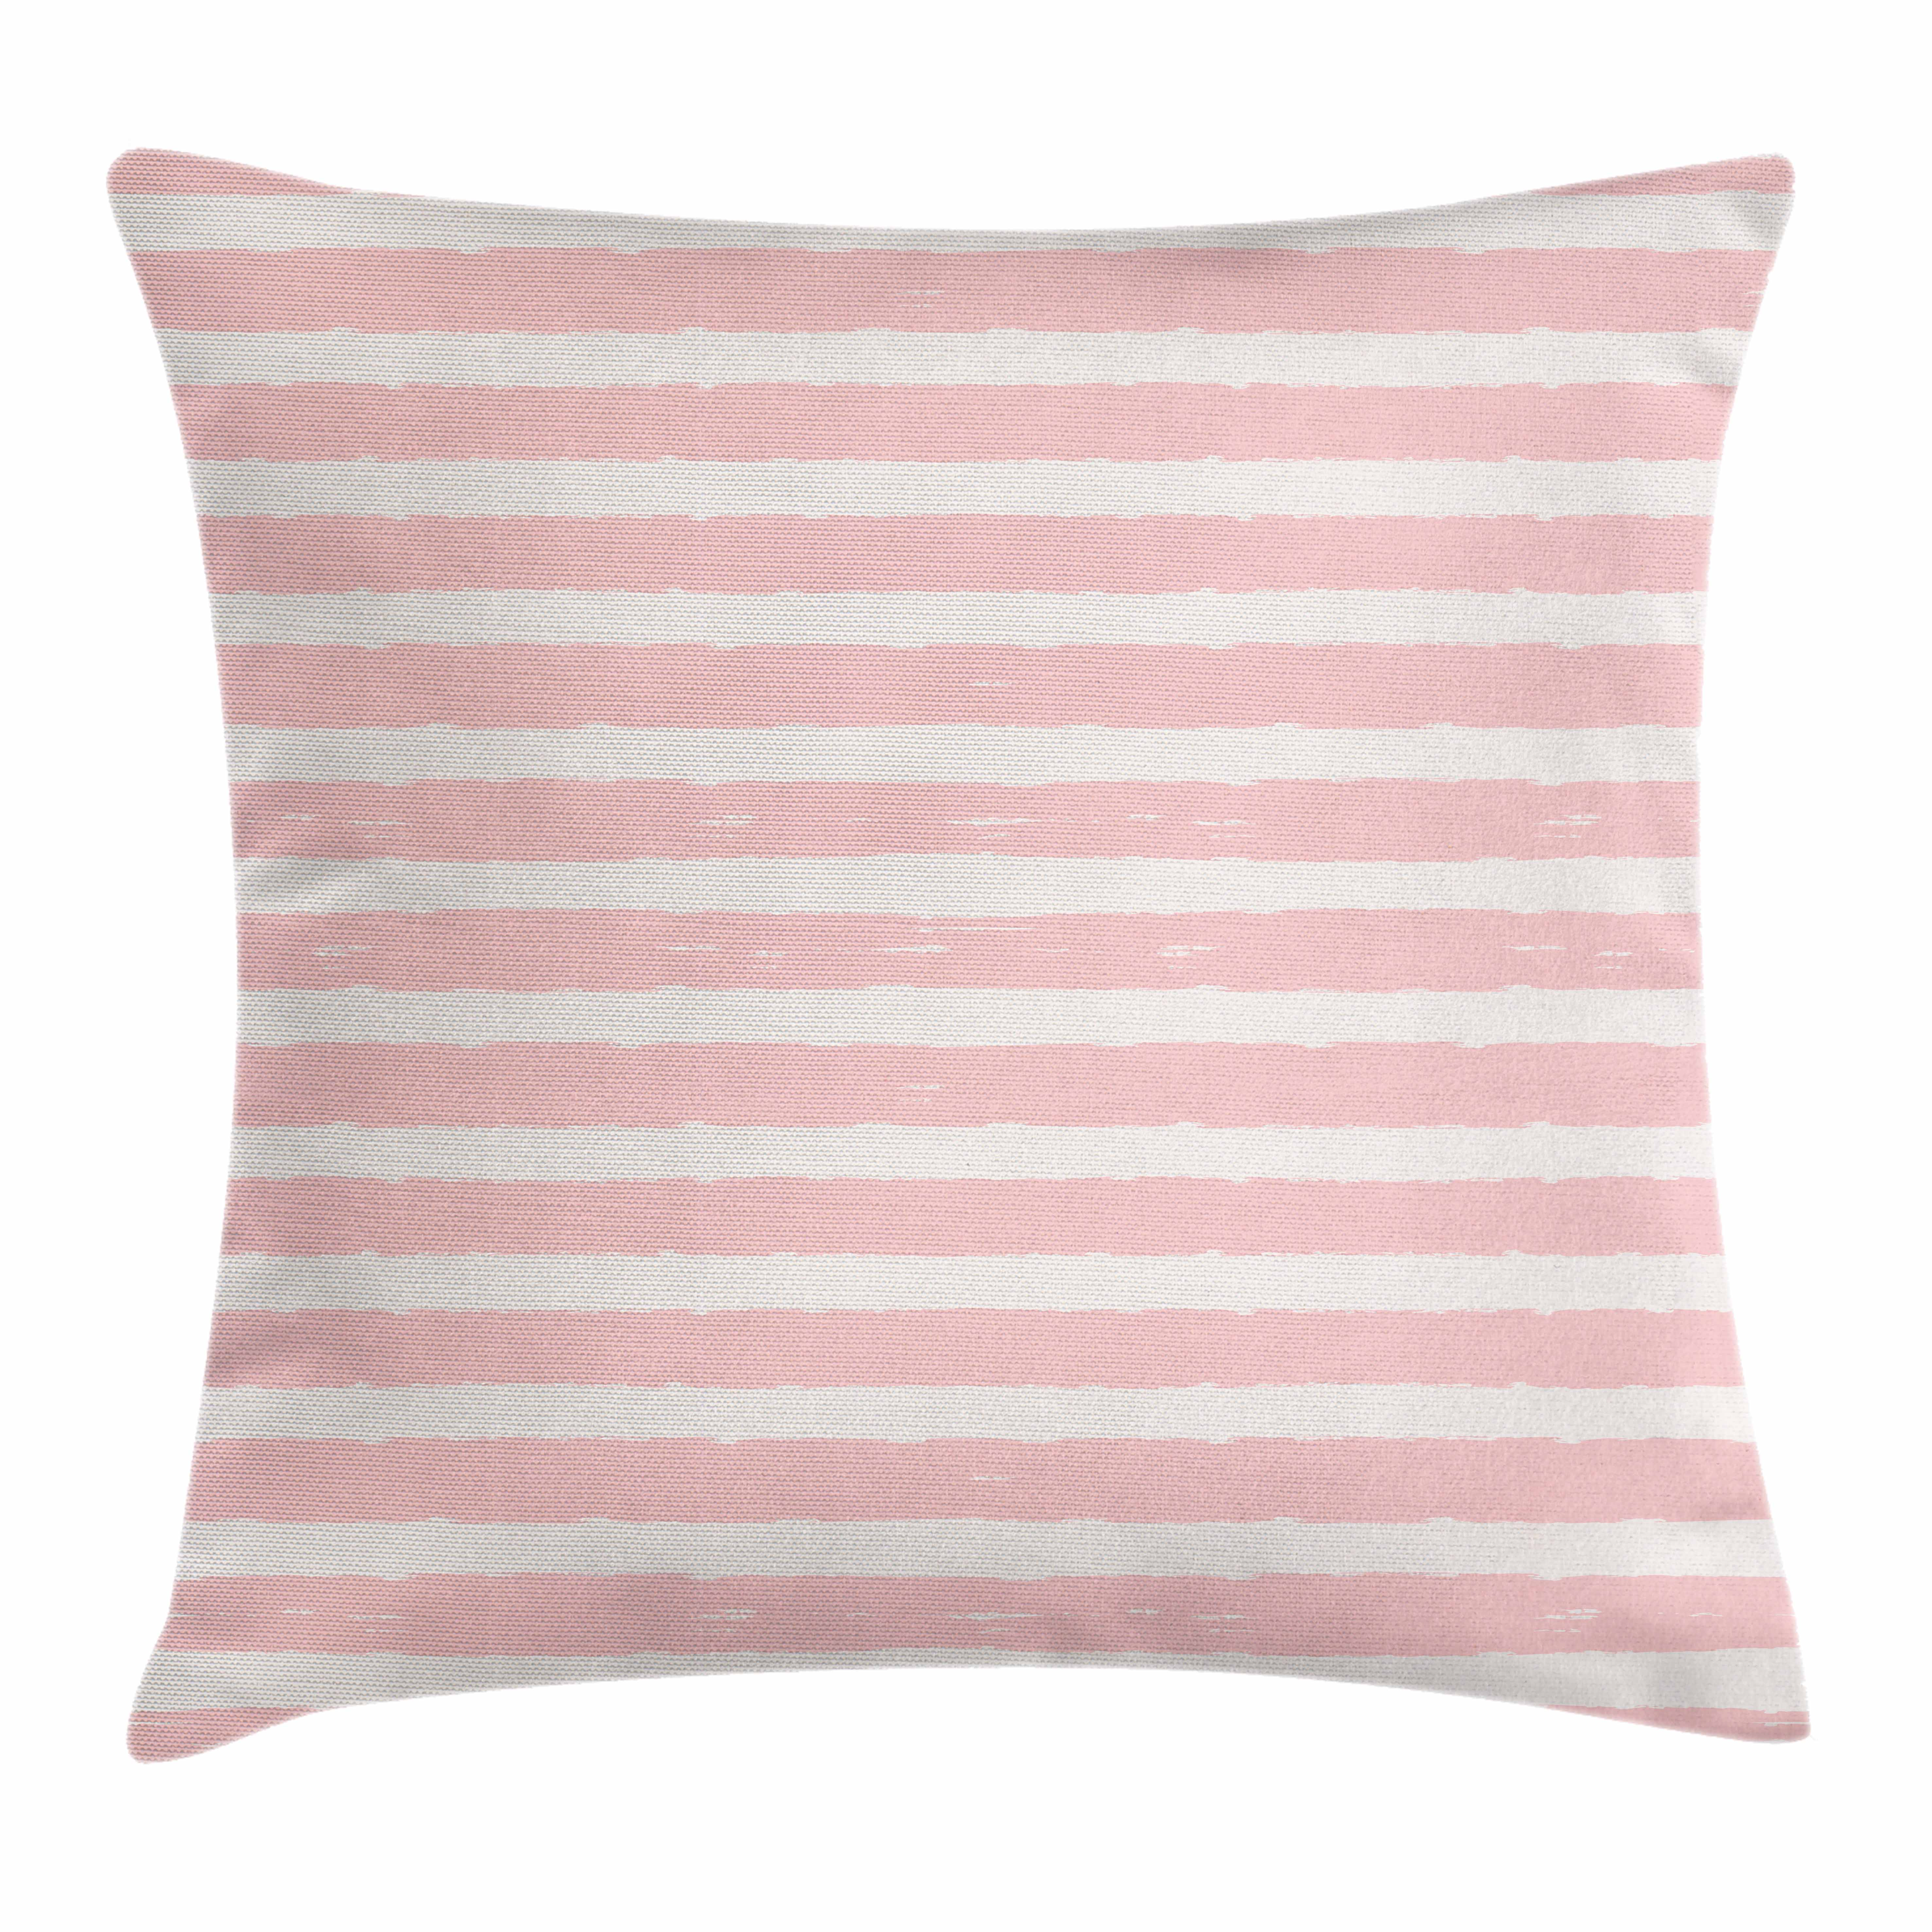 Kids Throw Pillow Cushion Cover, Paint Brushstrokes in Horizontal Direction Pastel Color Pattern for Girls Kids, Decorative Square Accent Pillow Case, 18 X 18 Inches, Blush Baby Pink, by Ambesonne